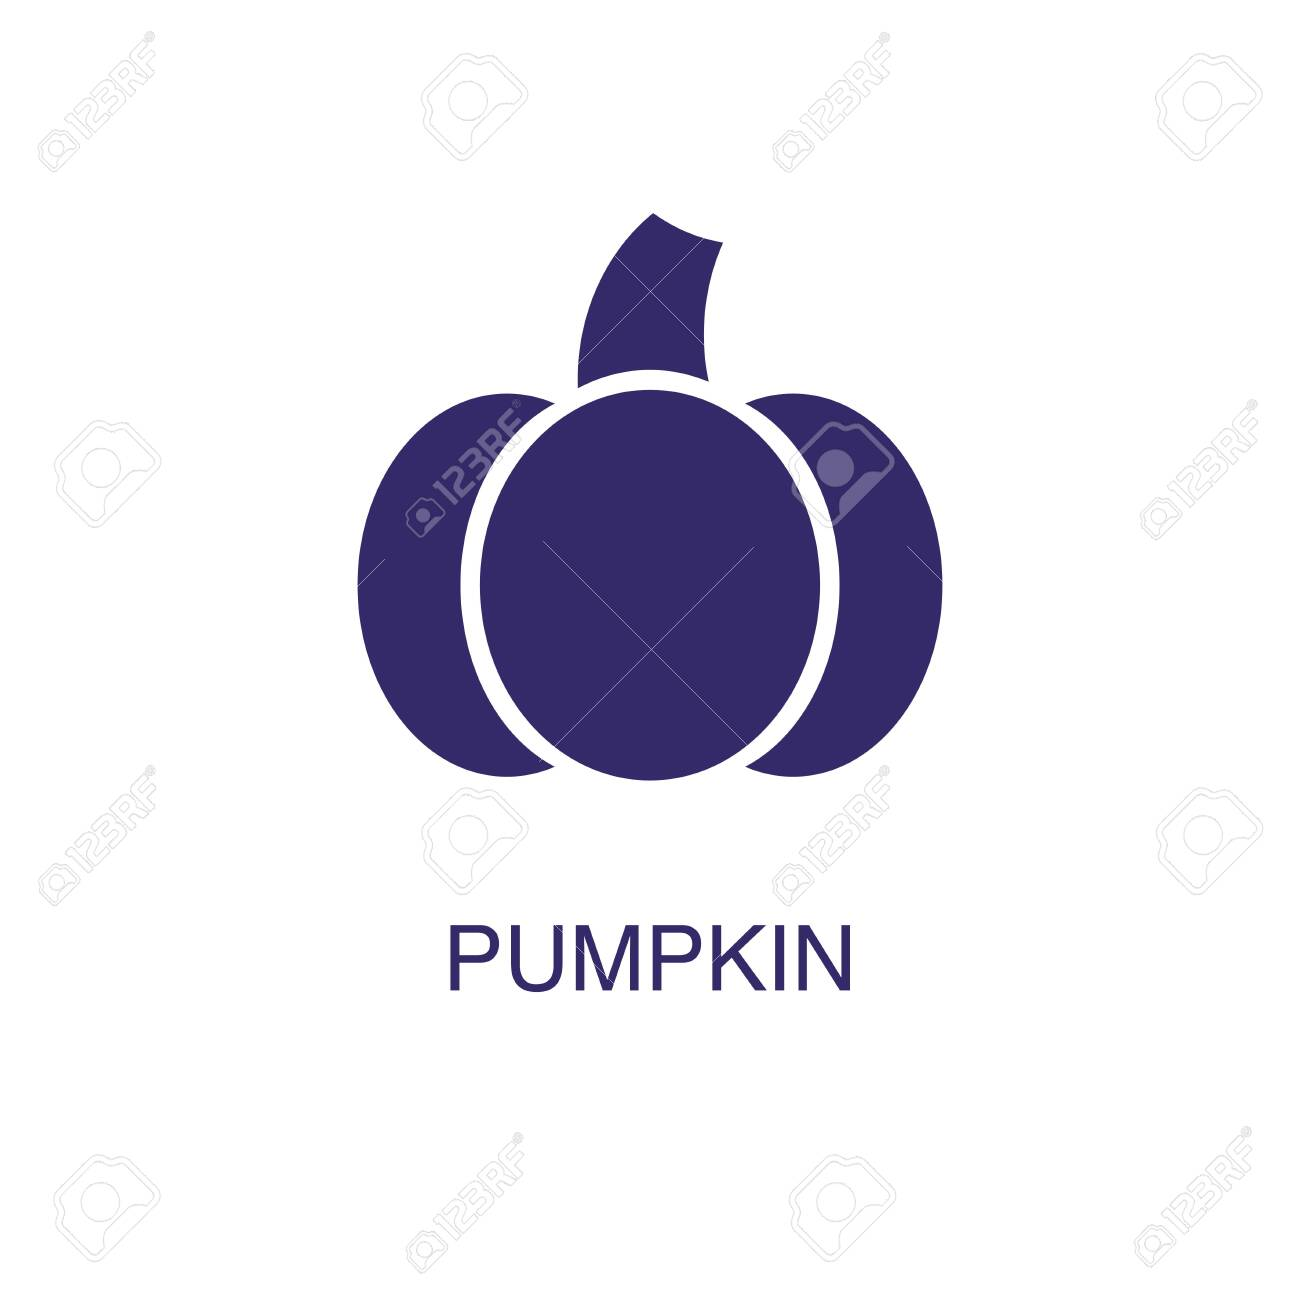 Pumpkin element in flat simple style on white background. Pumpkin icon, with text name concept template - 134450172